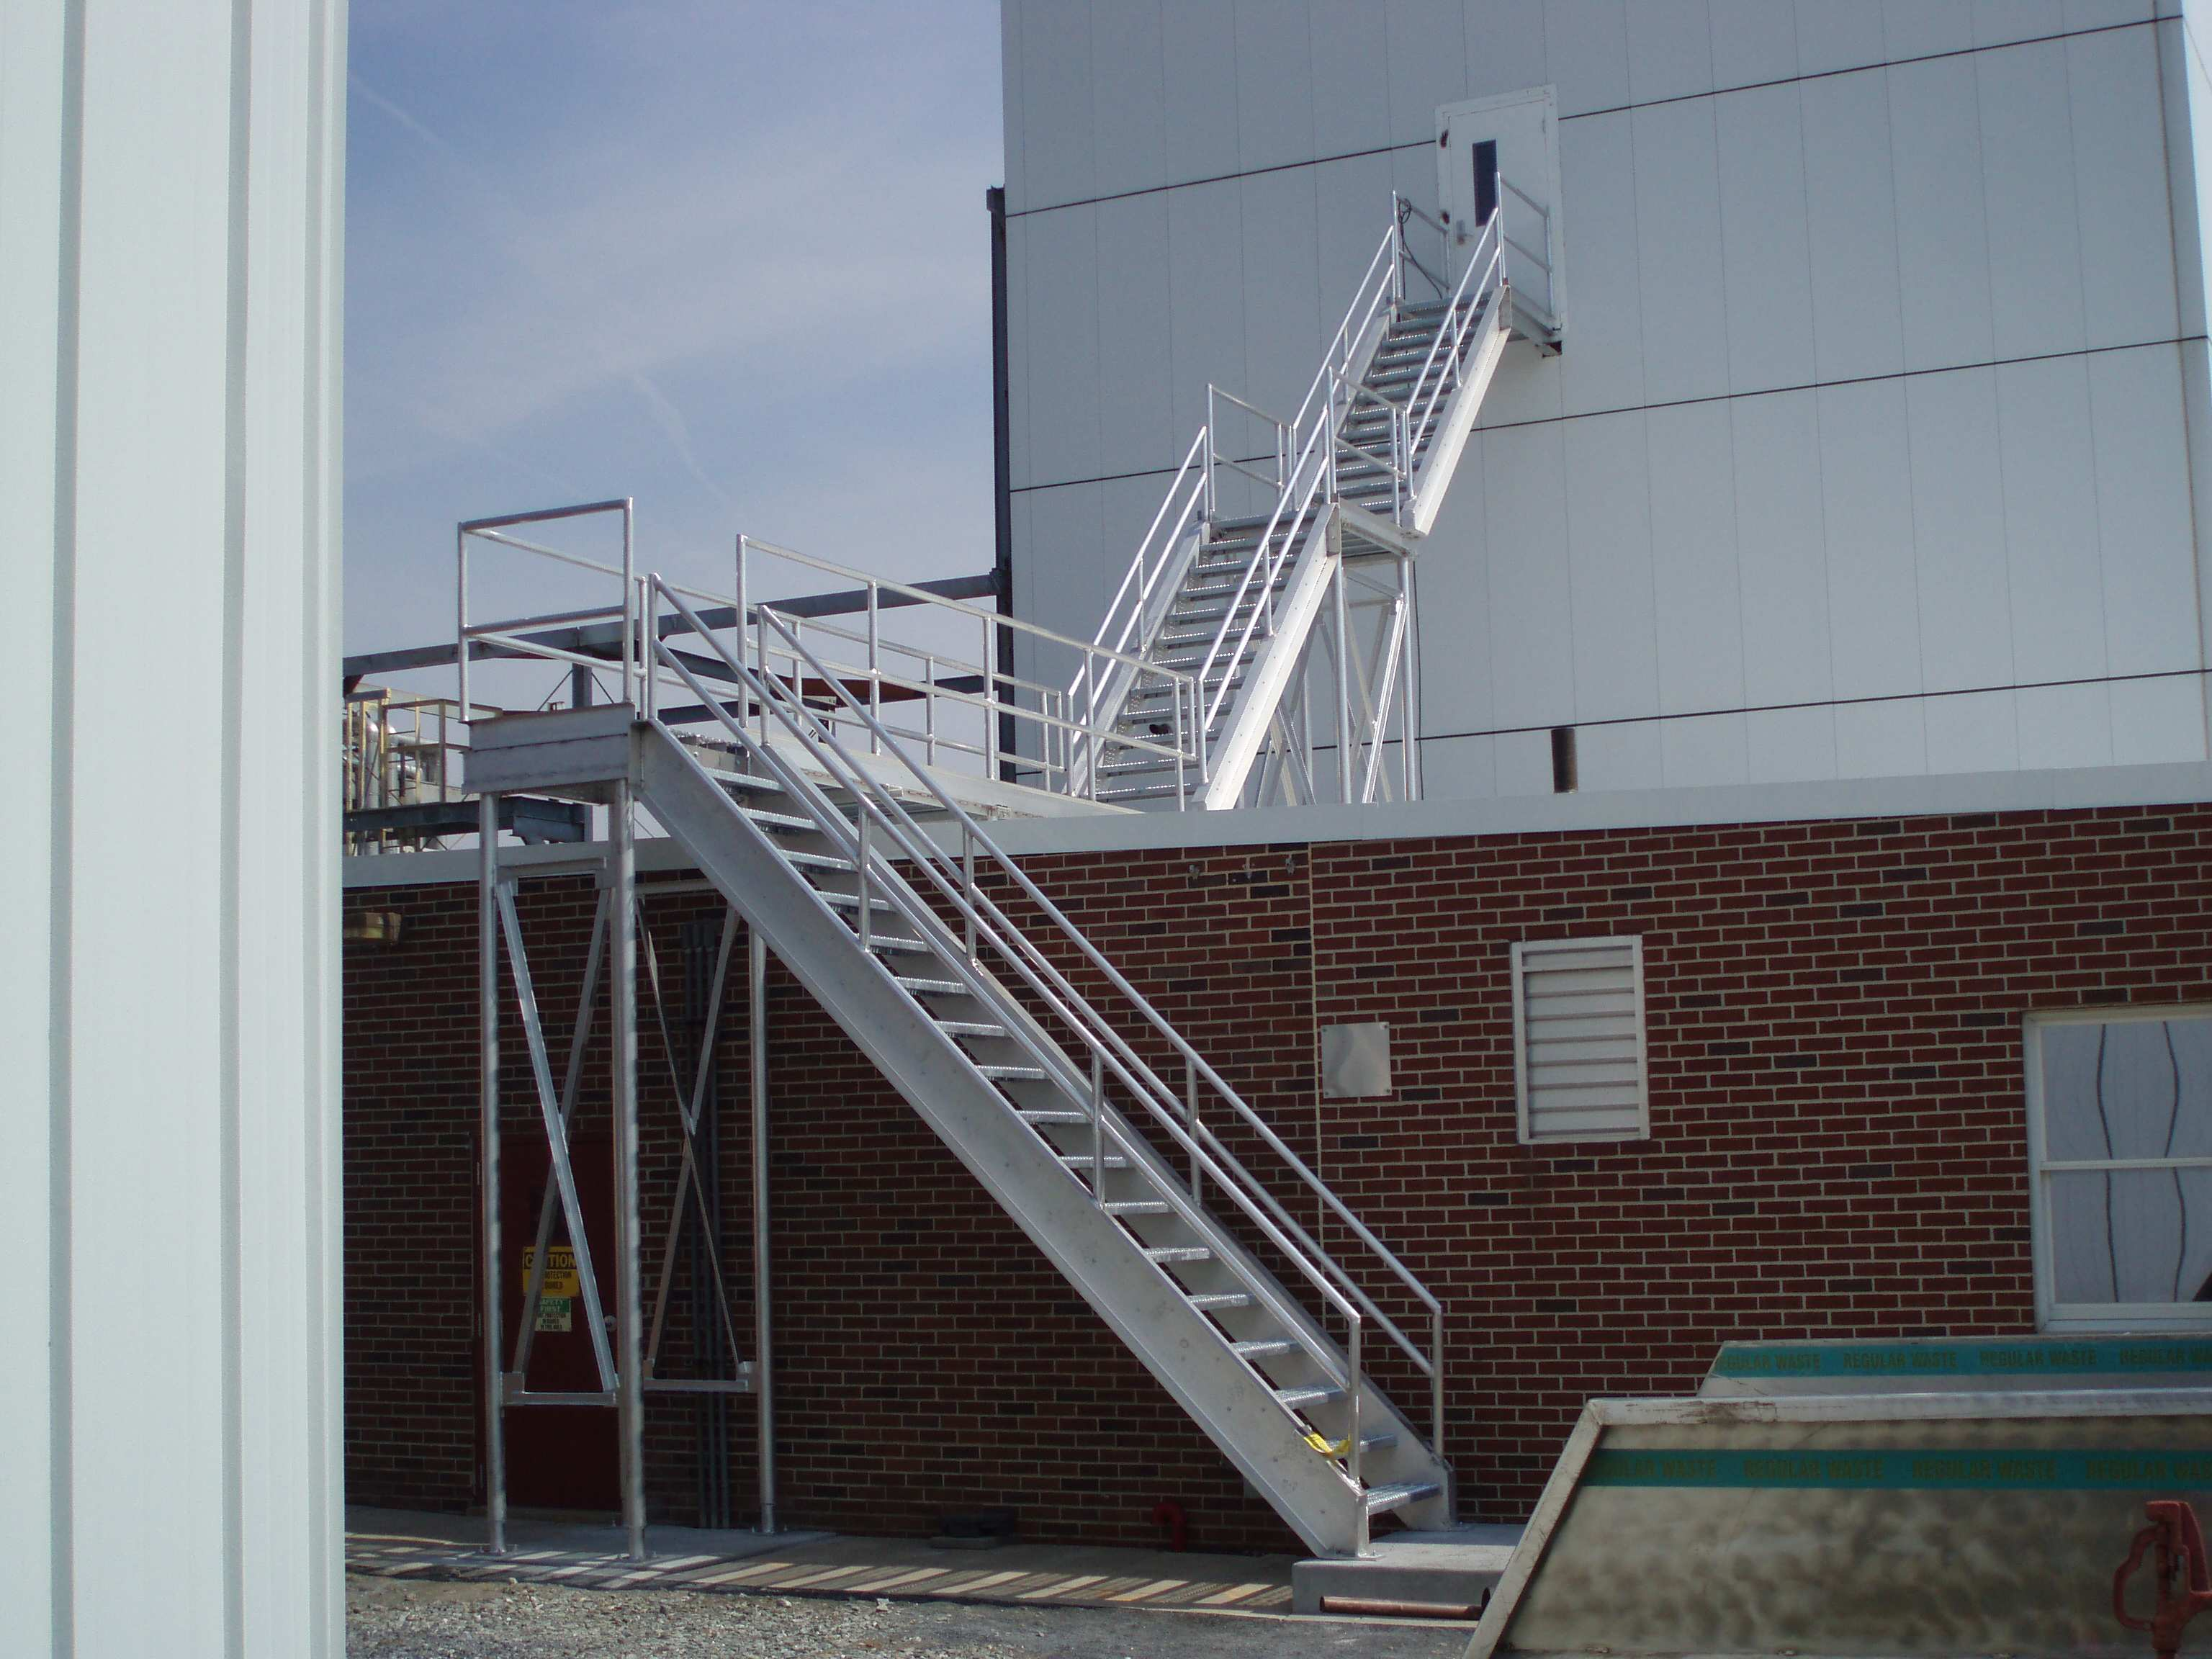 Two Story Aluminum Stairway with Platform